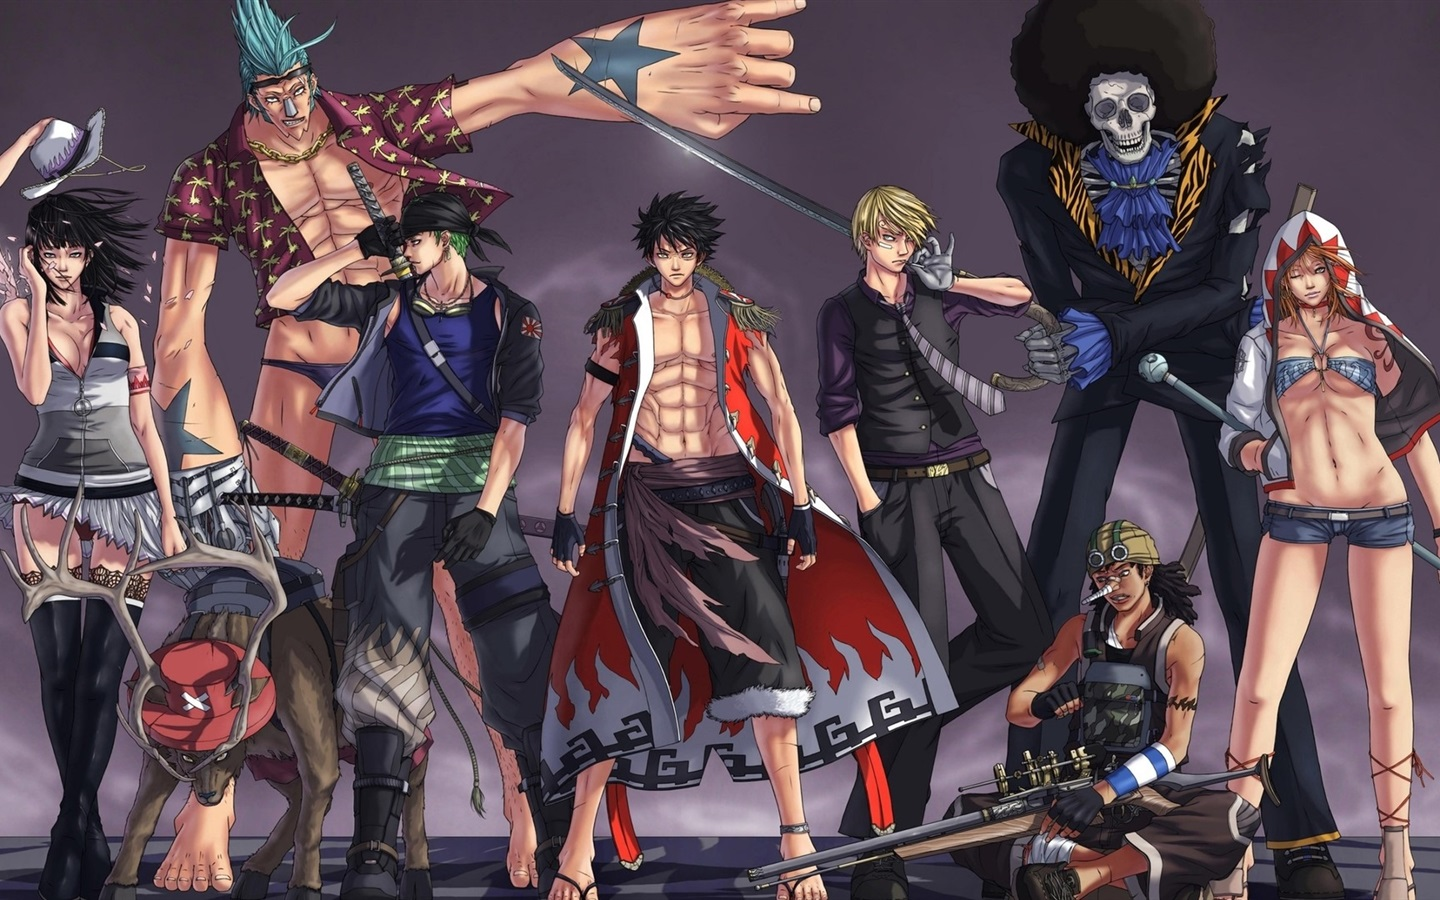 Wallpaper One Piece Japanese anime